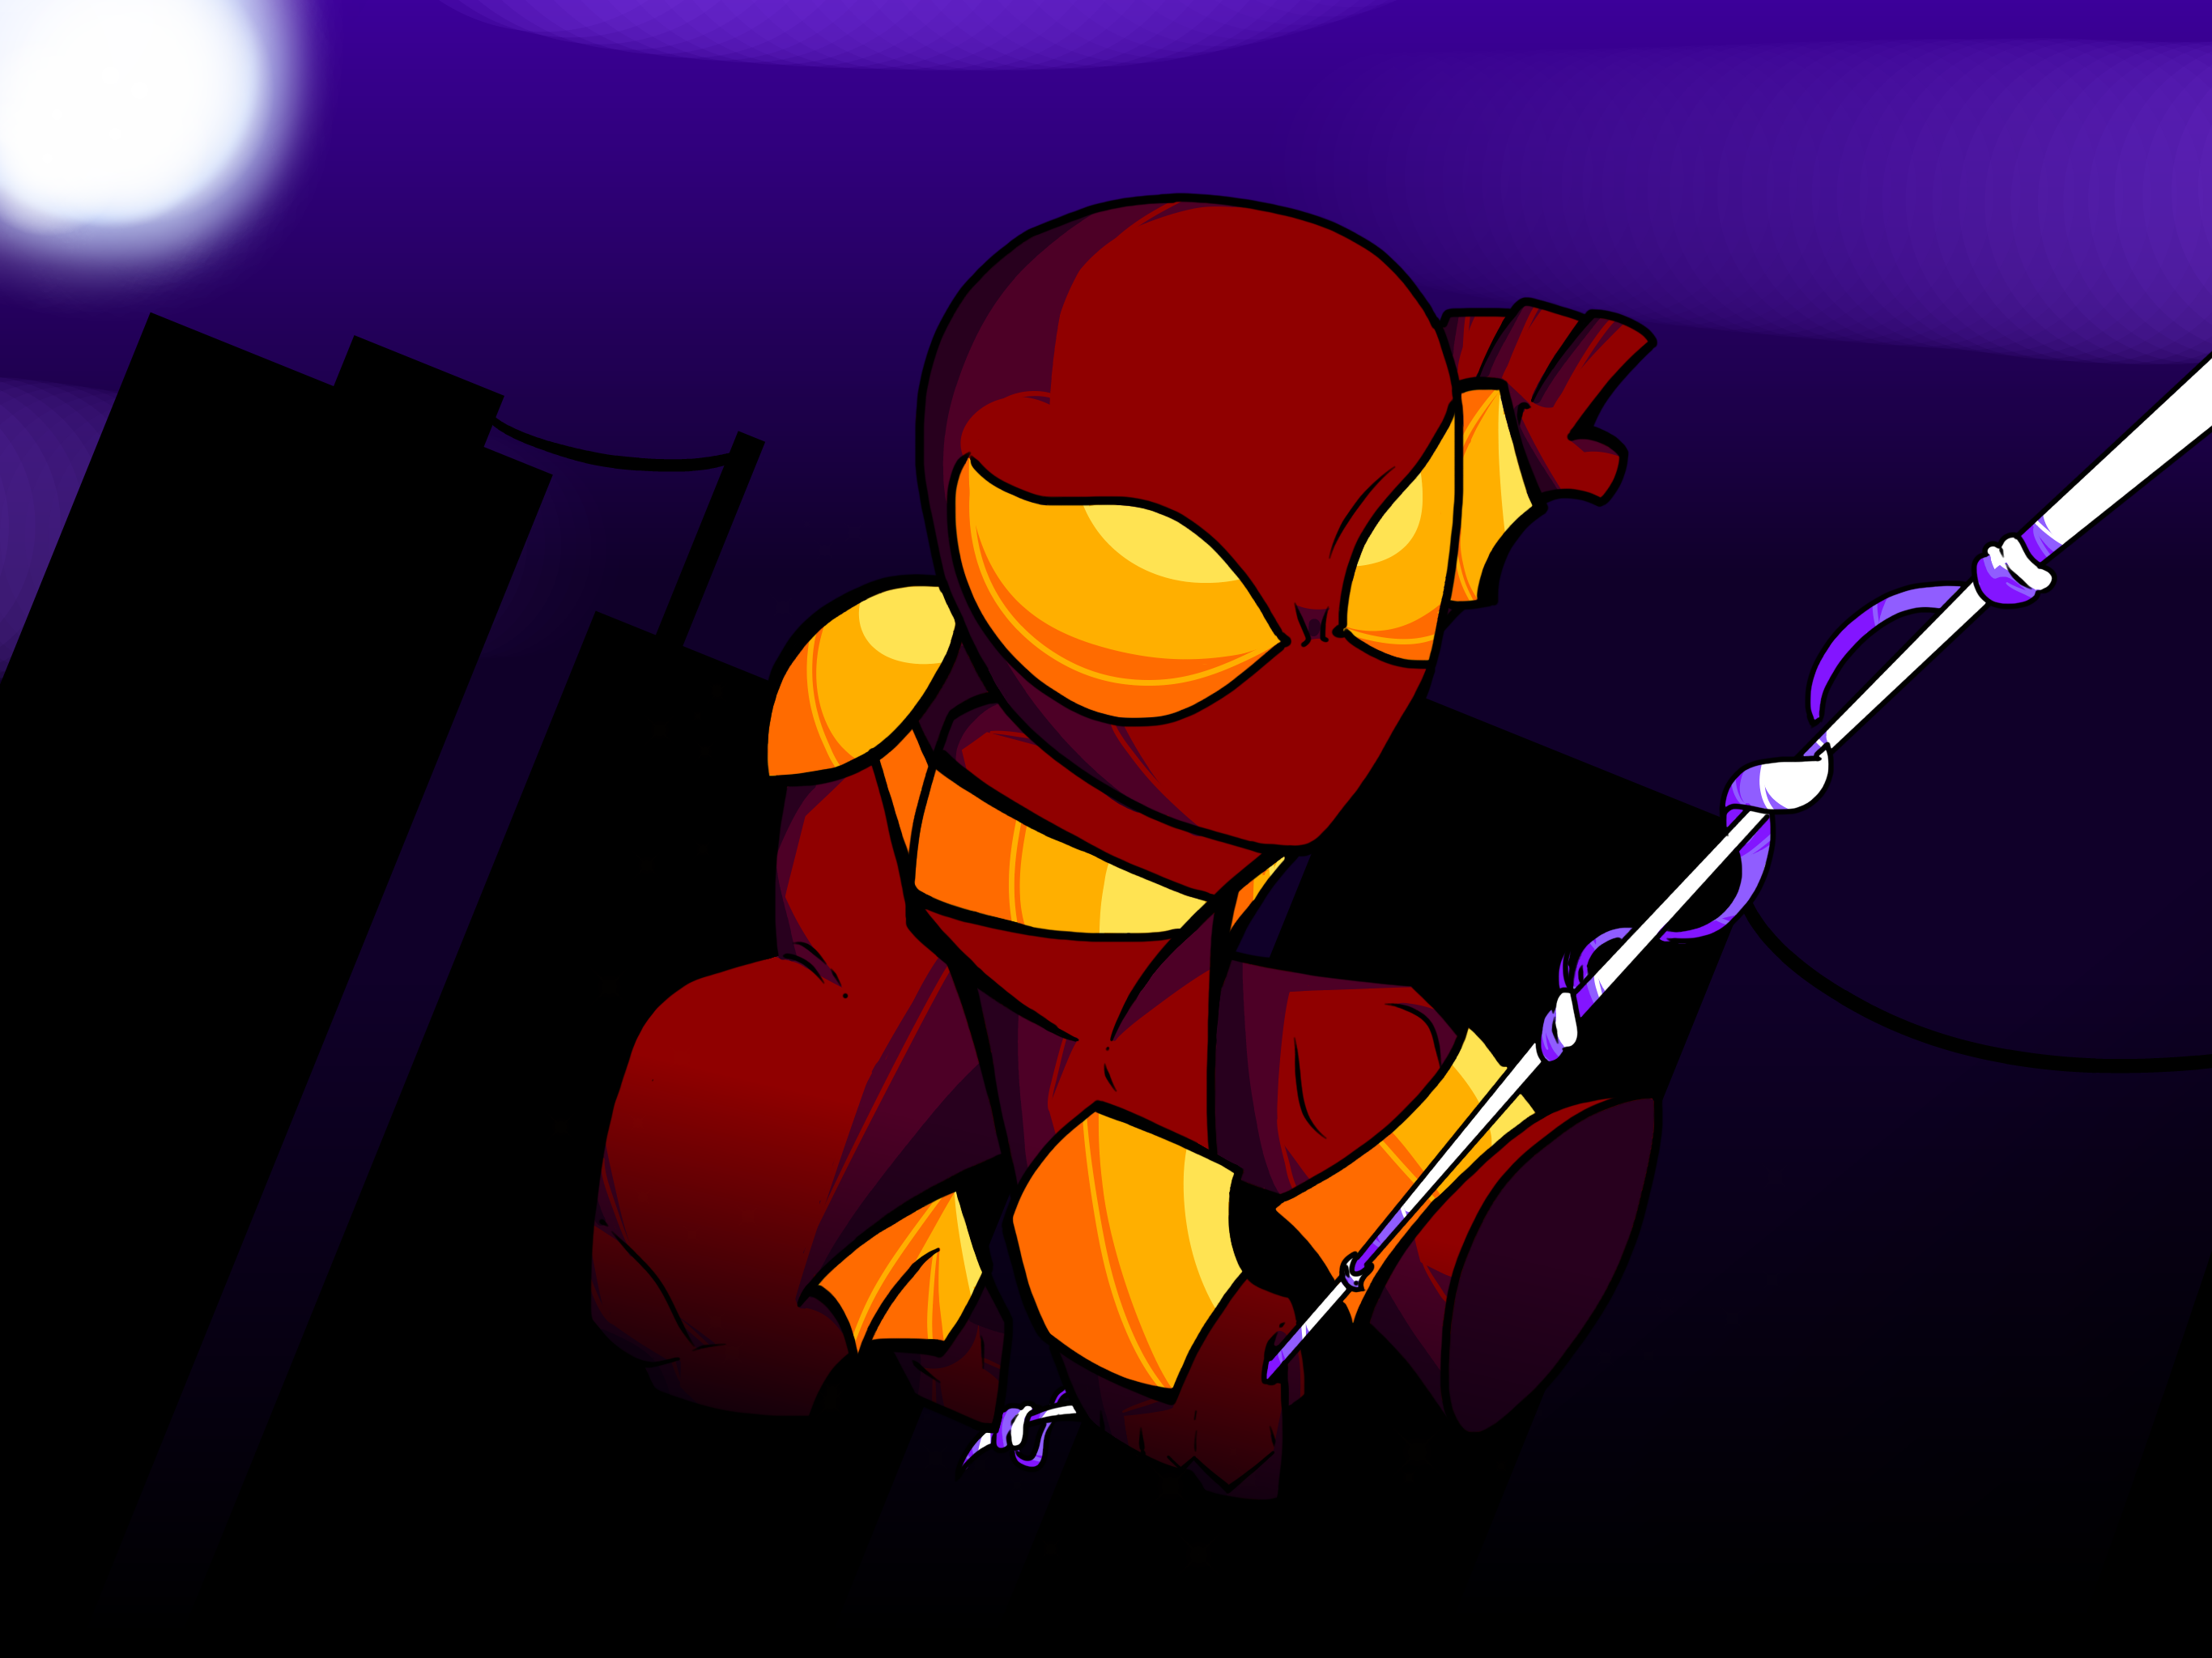 Iron spider (collab with Wafflesmash)